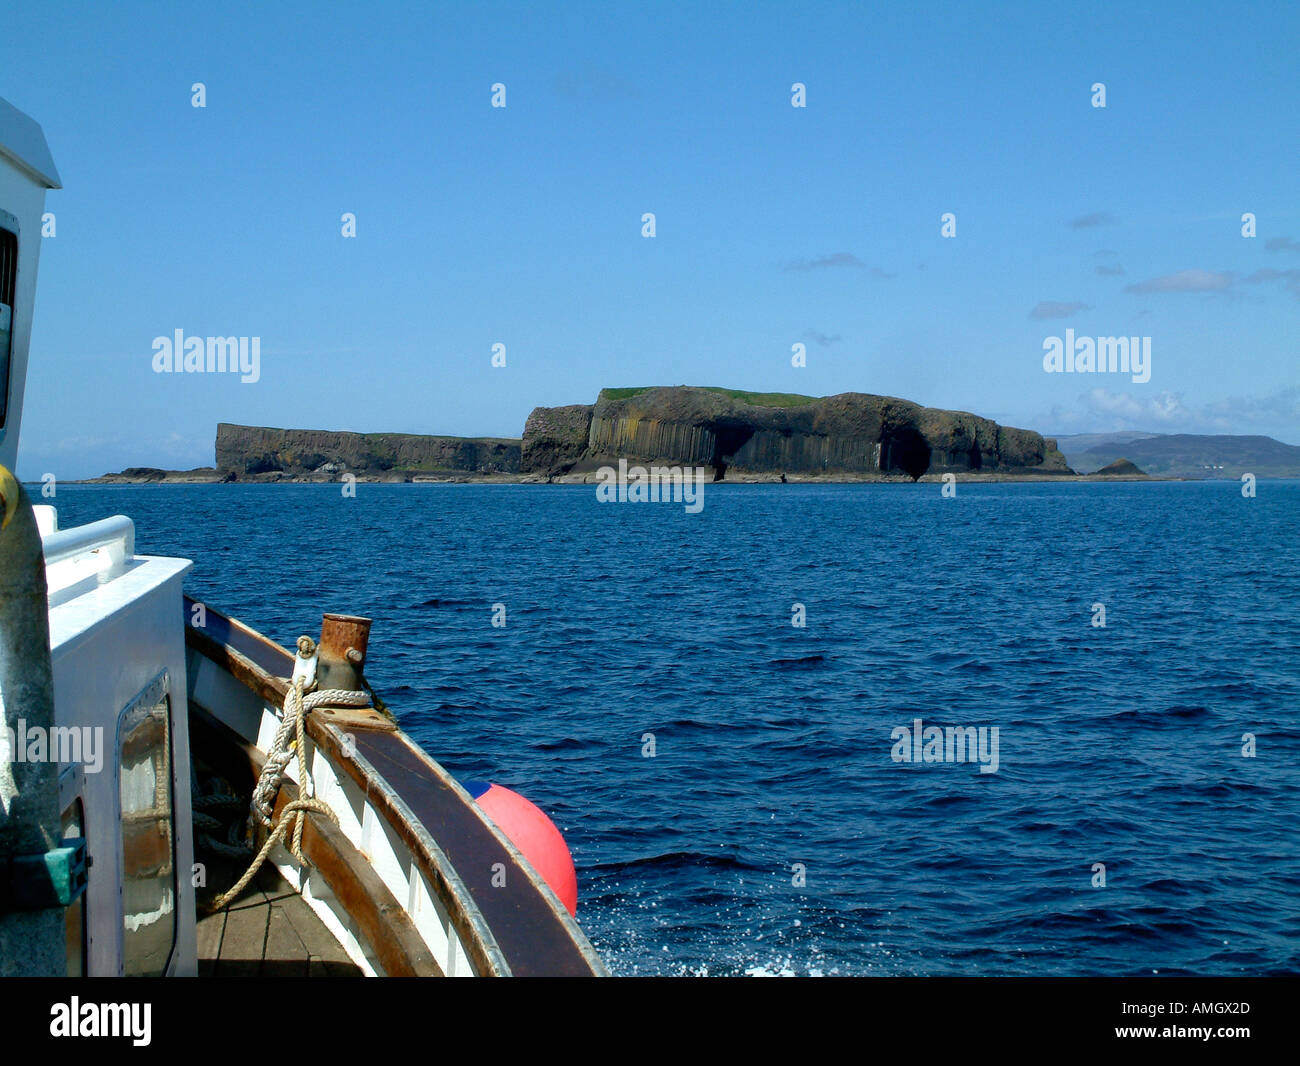 Approaching the island of Staffa viewed from a boat Scotland UK - Stock Image